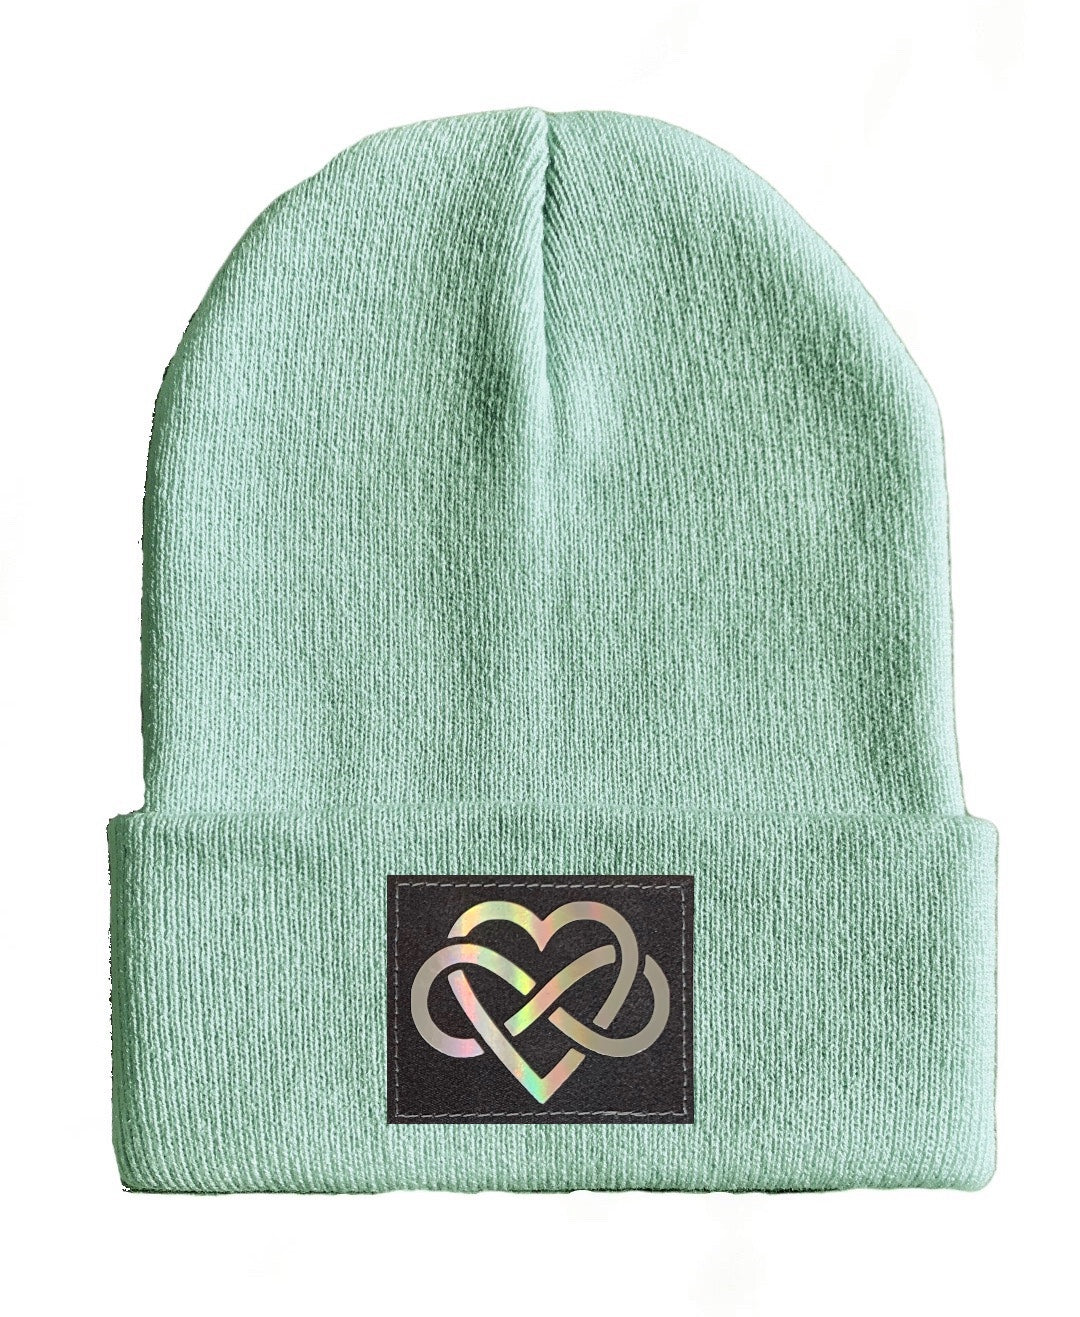 Love yoga Beanie hat by Buddha Gear infinity